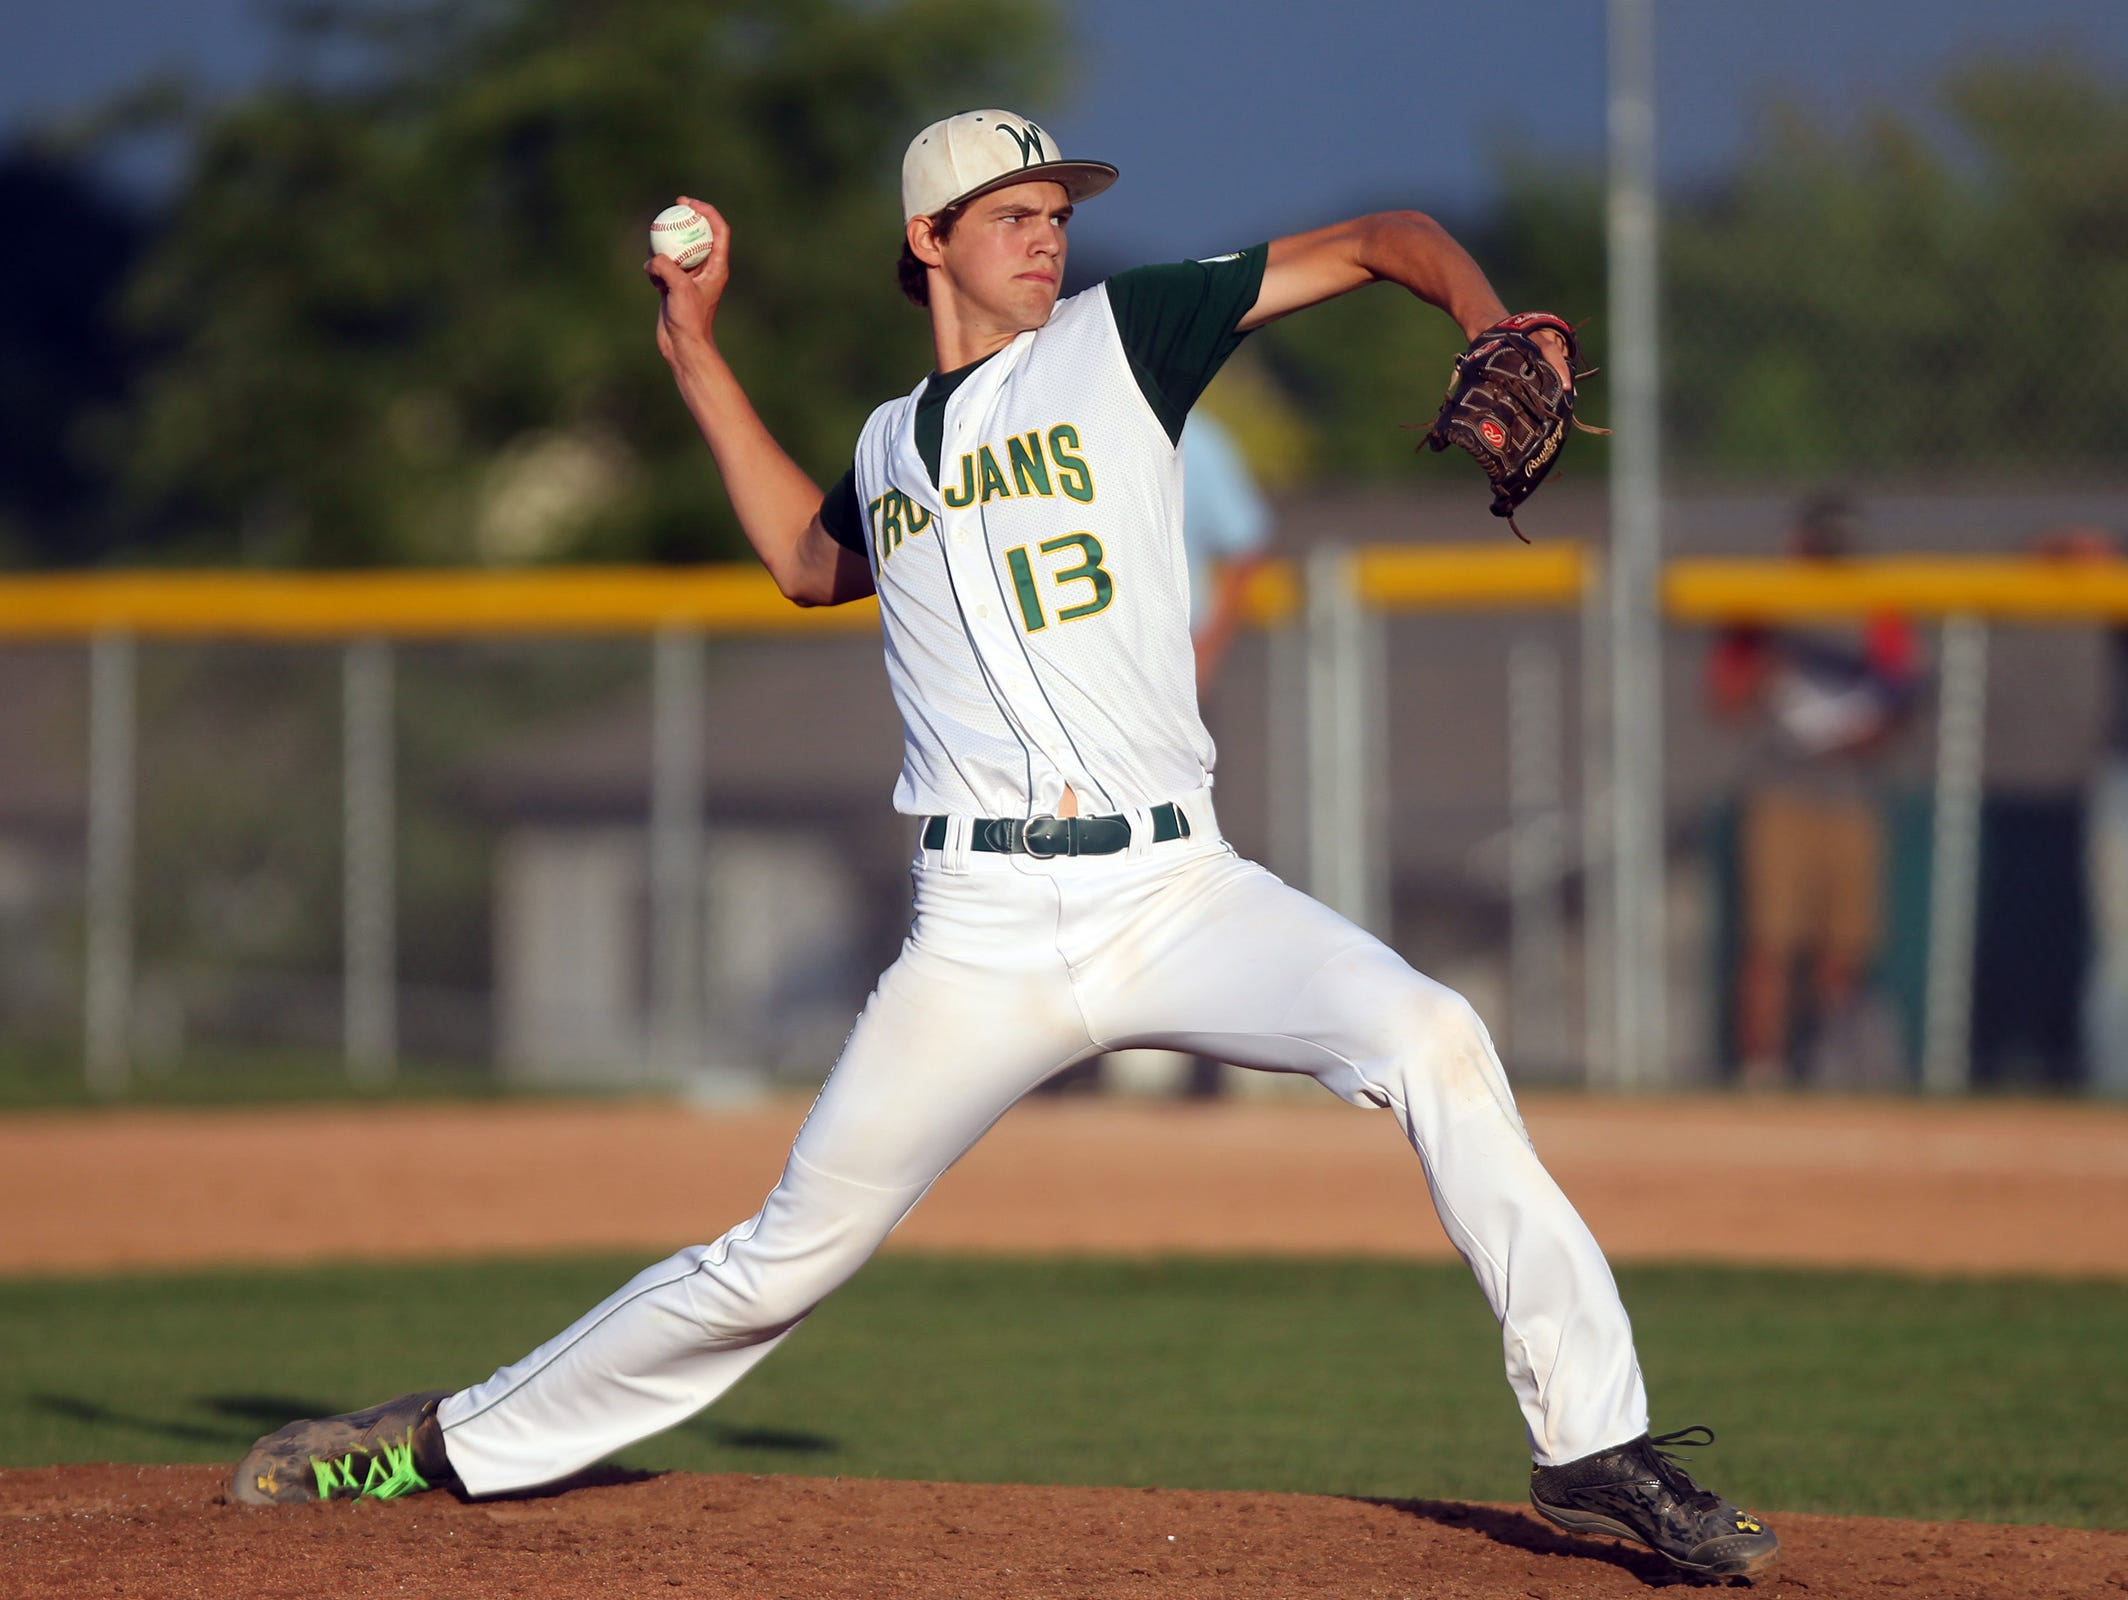 West High's Tanner Lohaus delivers a pitch during the Trojans' game against City High at West High on Tuesday, July 7, 2015.